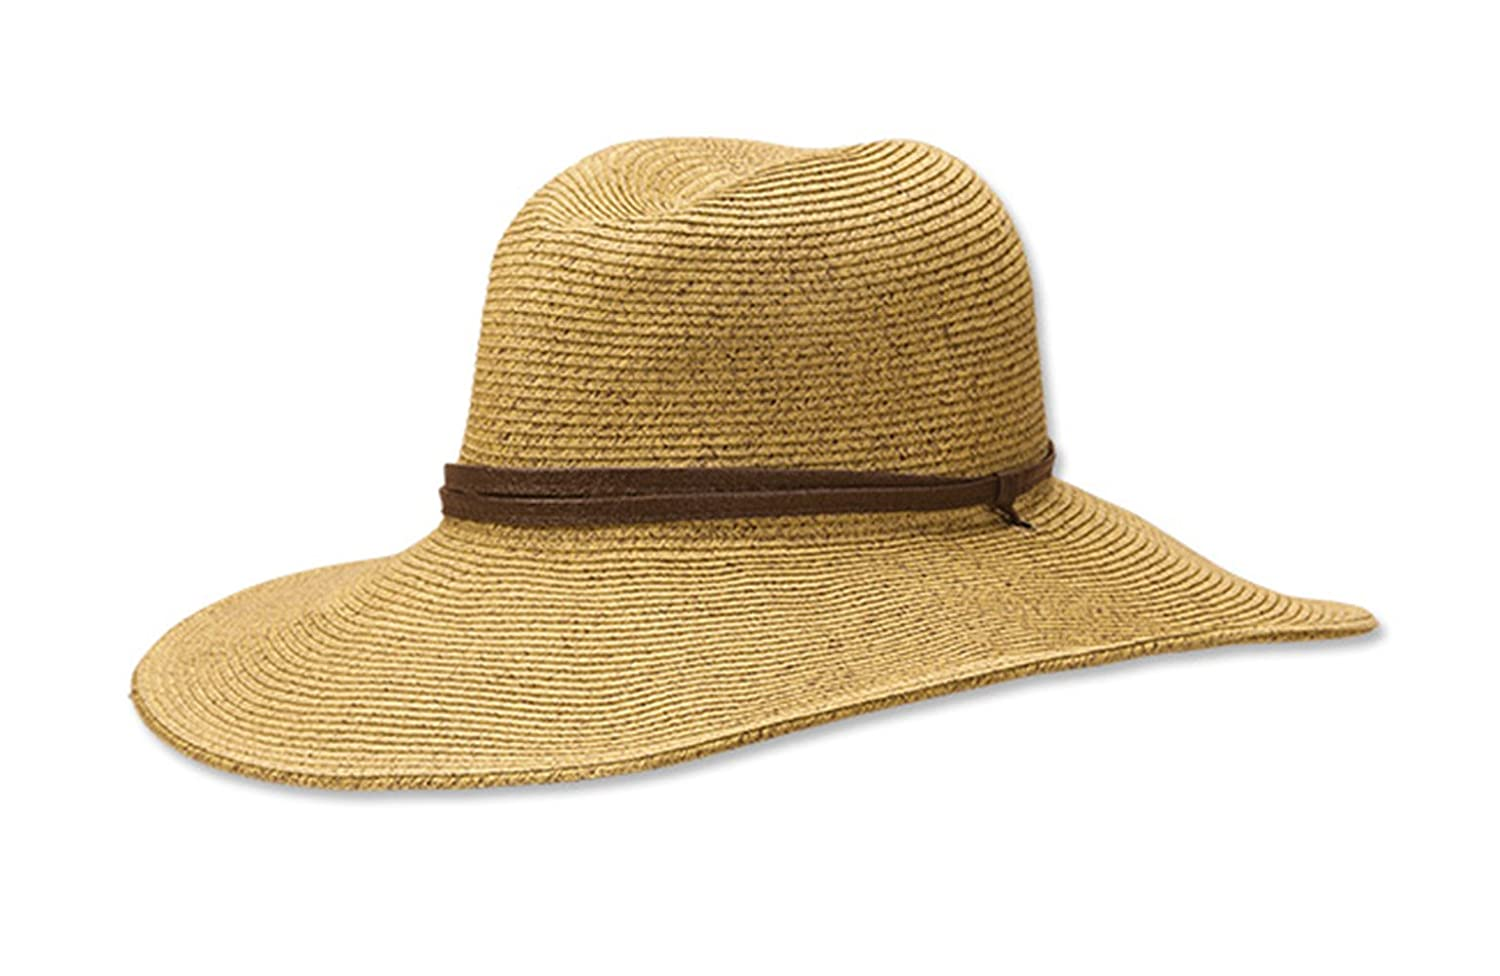 Orvis women packable sun hat bike jpg 1500x976 Orvis hats 3c8225441252